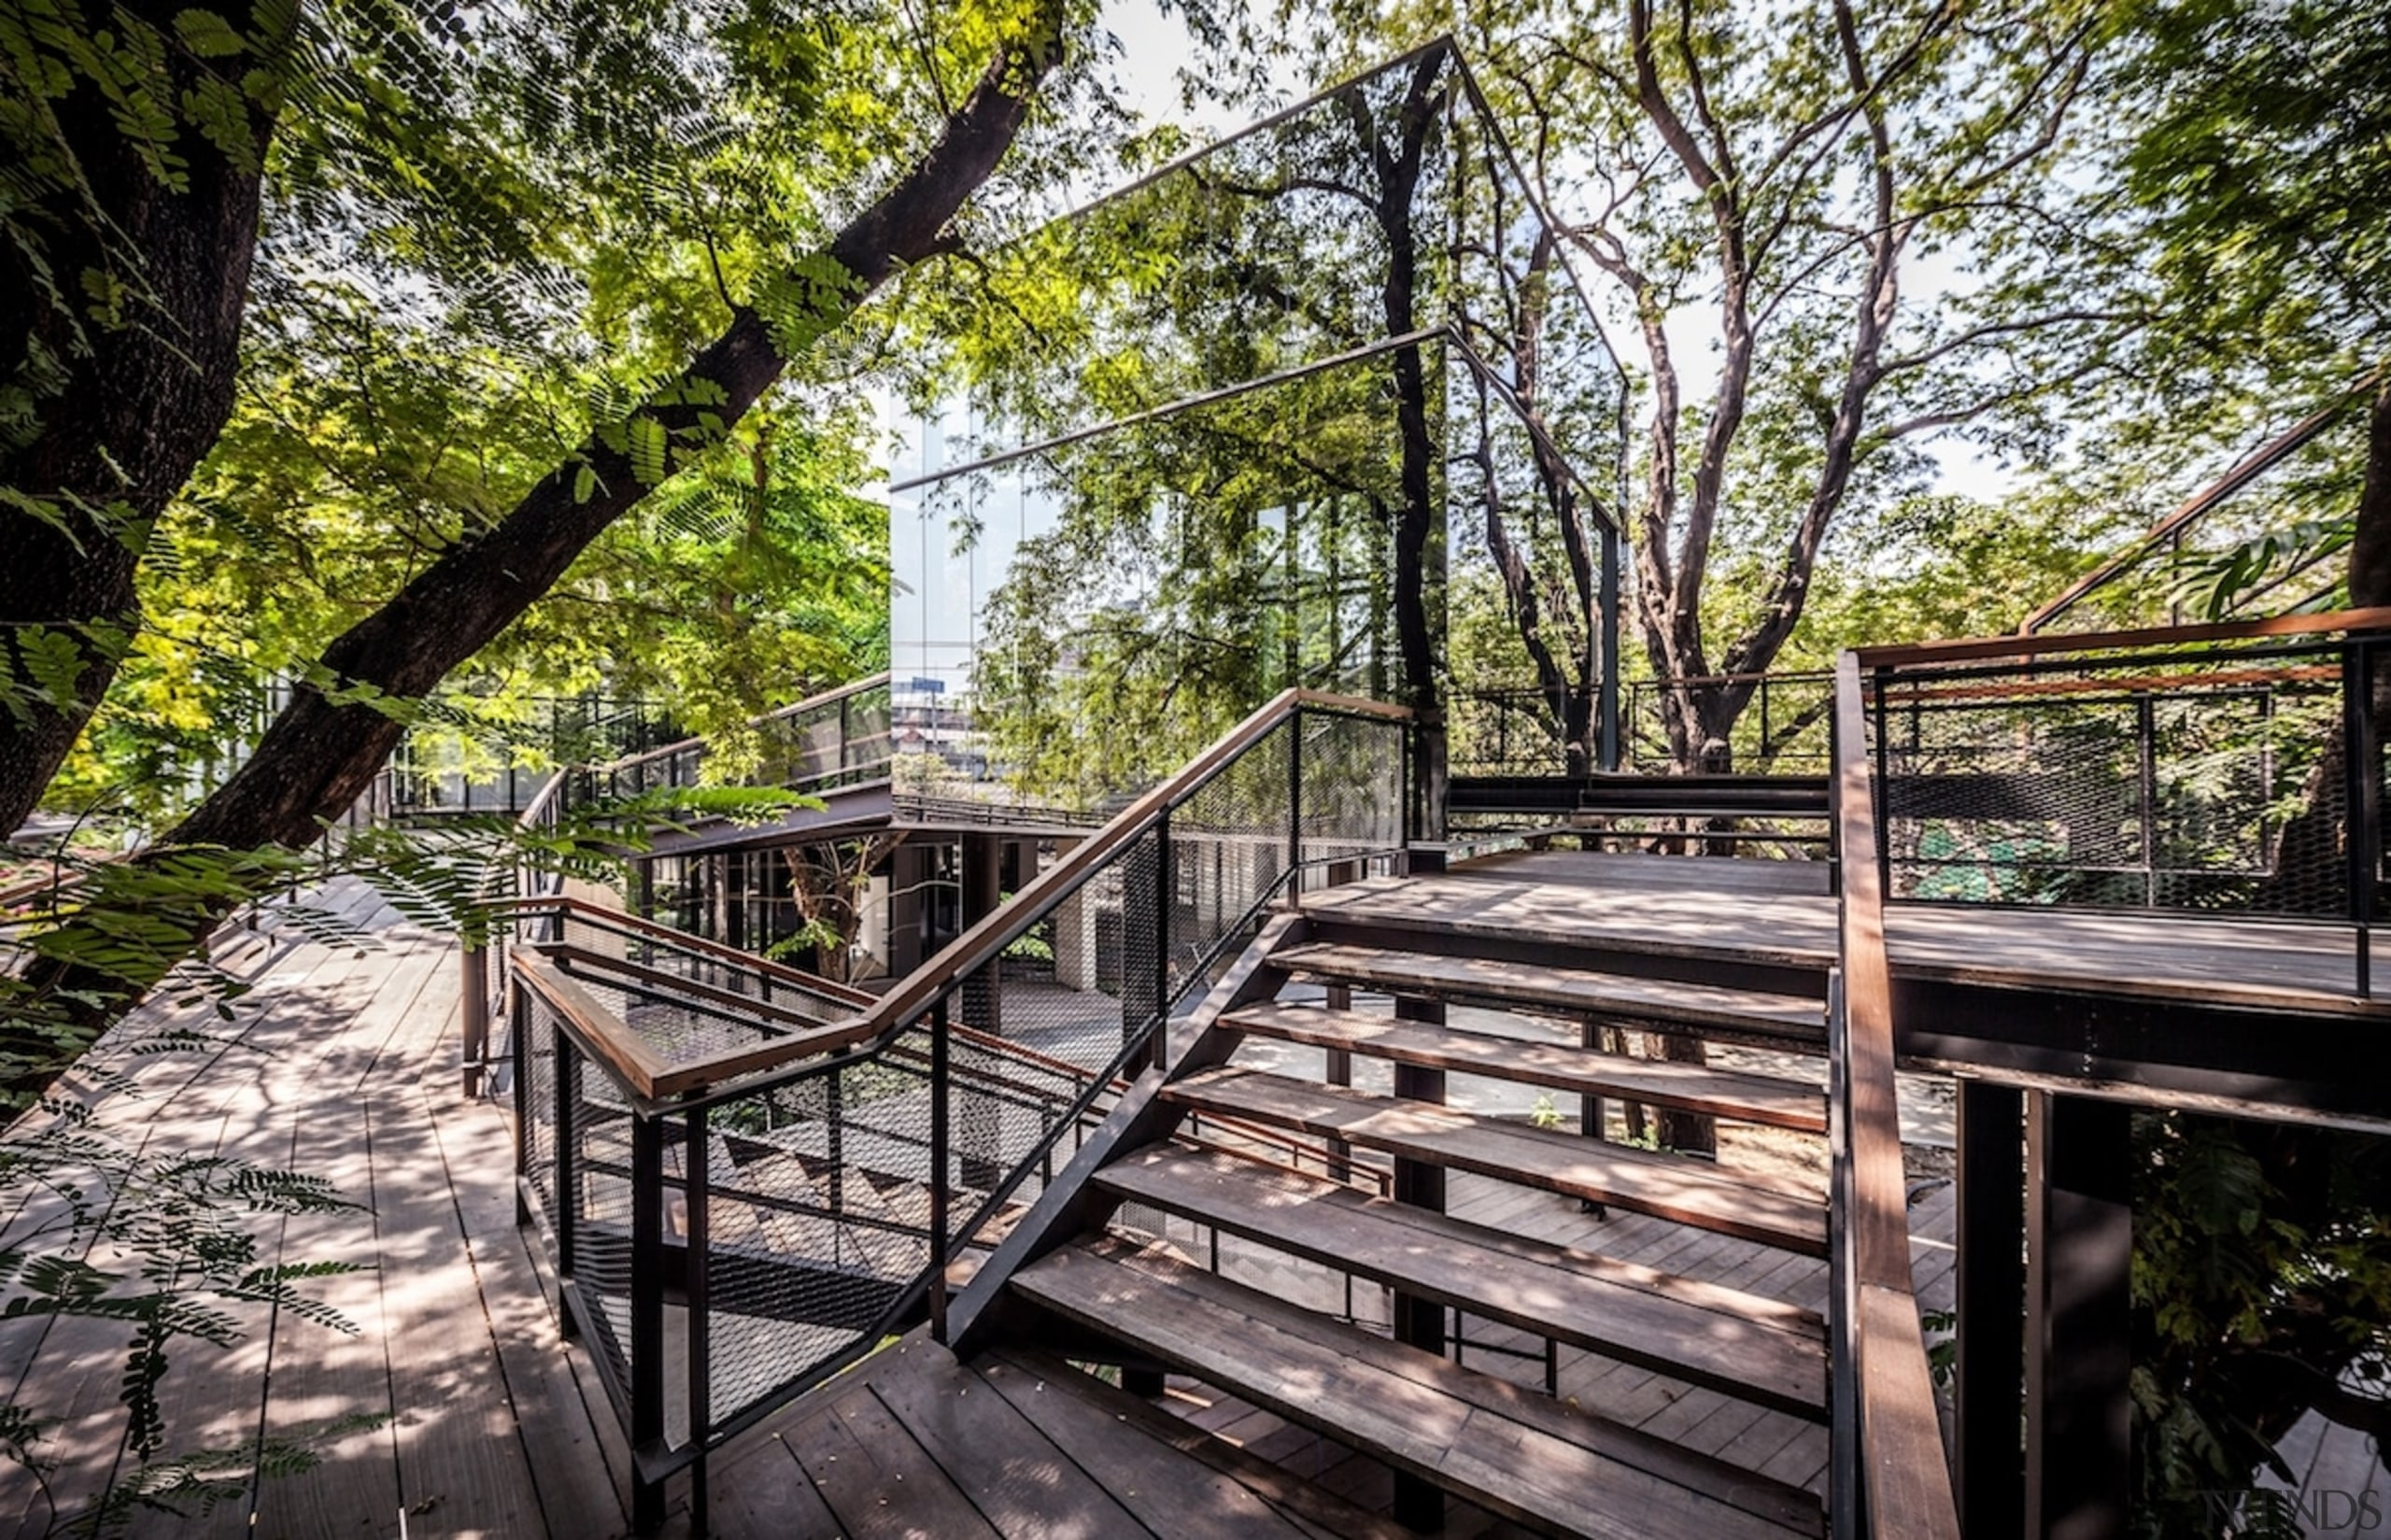 Naiipa 40 - outdoor structure | path | outdoor structure, path, plant, real estate, trail, tree, walkway, gray, black